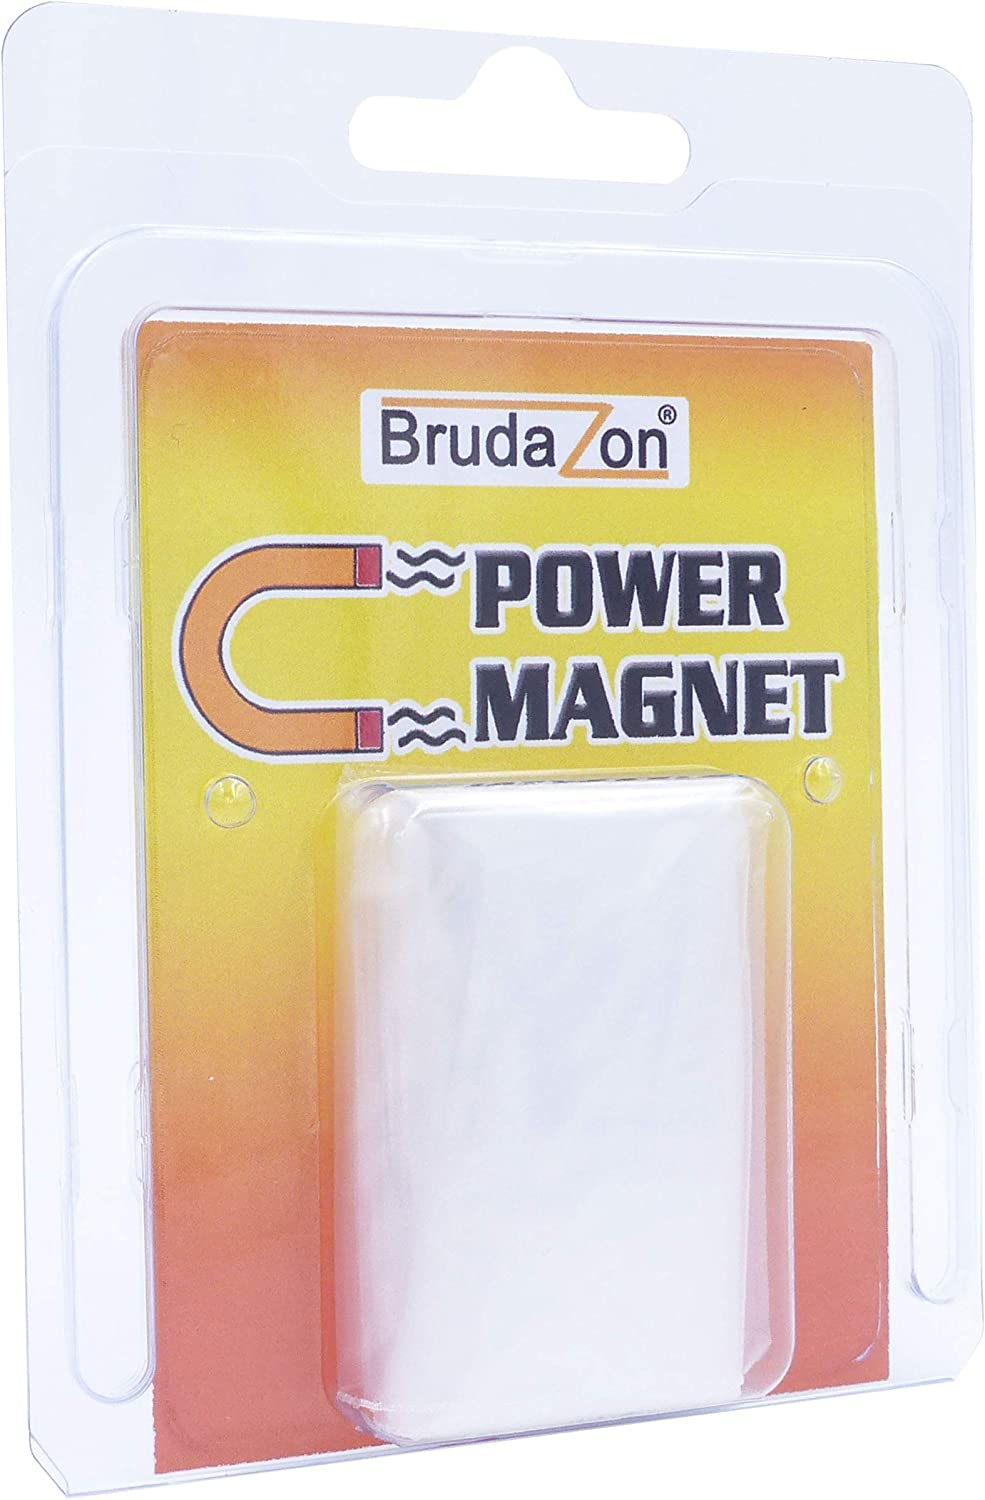 small N52 strongest level Power Magnet for Model Making Brudazon Whiteboard round /& extra strong 10 Mini Disc Magnets 6x2mm Refrigerator Crafting Neodymium Magnets super strong Photo